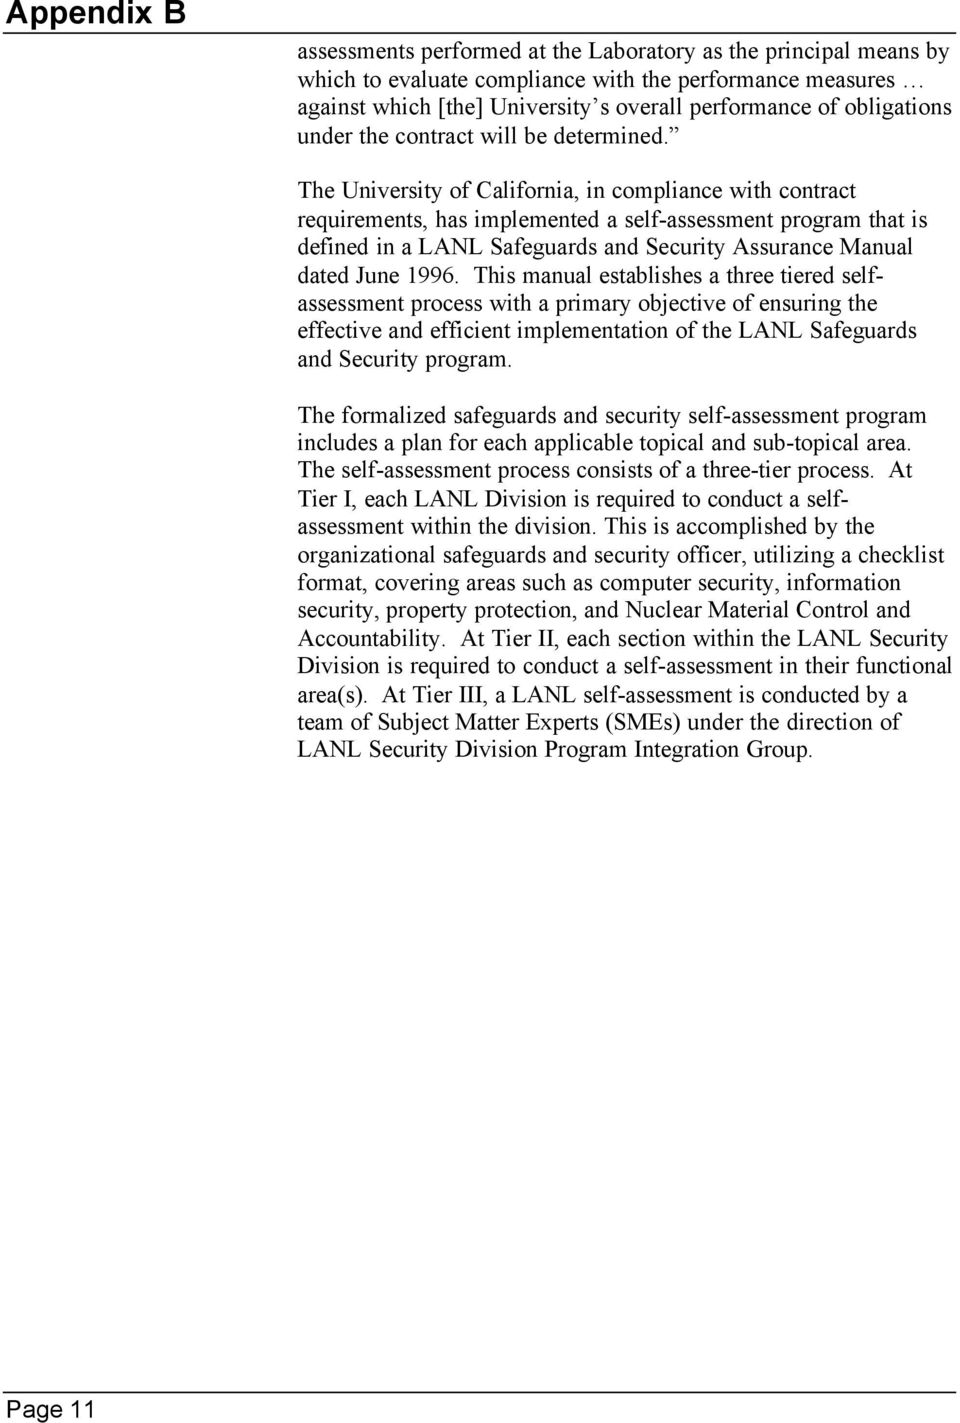 The University of California, in compliance with contract requirements, has implemented a self-assessment program that is defined in a LANL Safeguards and Security Assurance Manual dated June 1996.